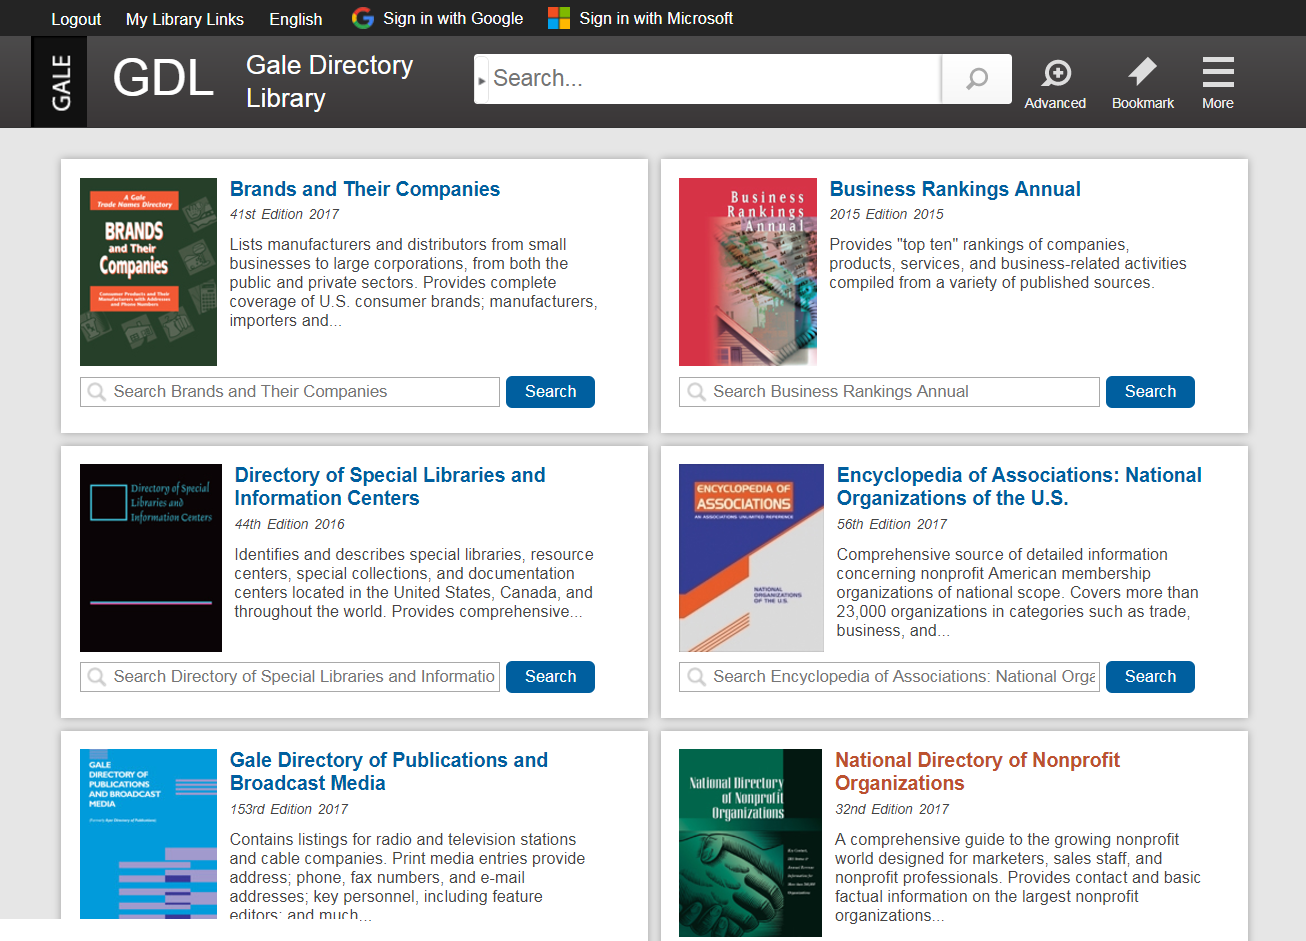 GALE DIRECTORY LIBRARY UNDERGOING SIGNIFICANT IMPROVEMENTS!